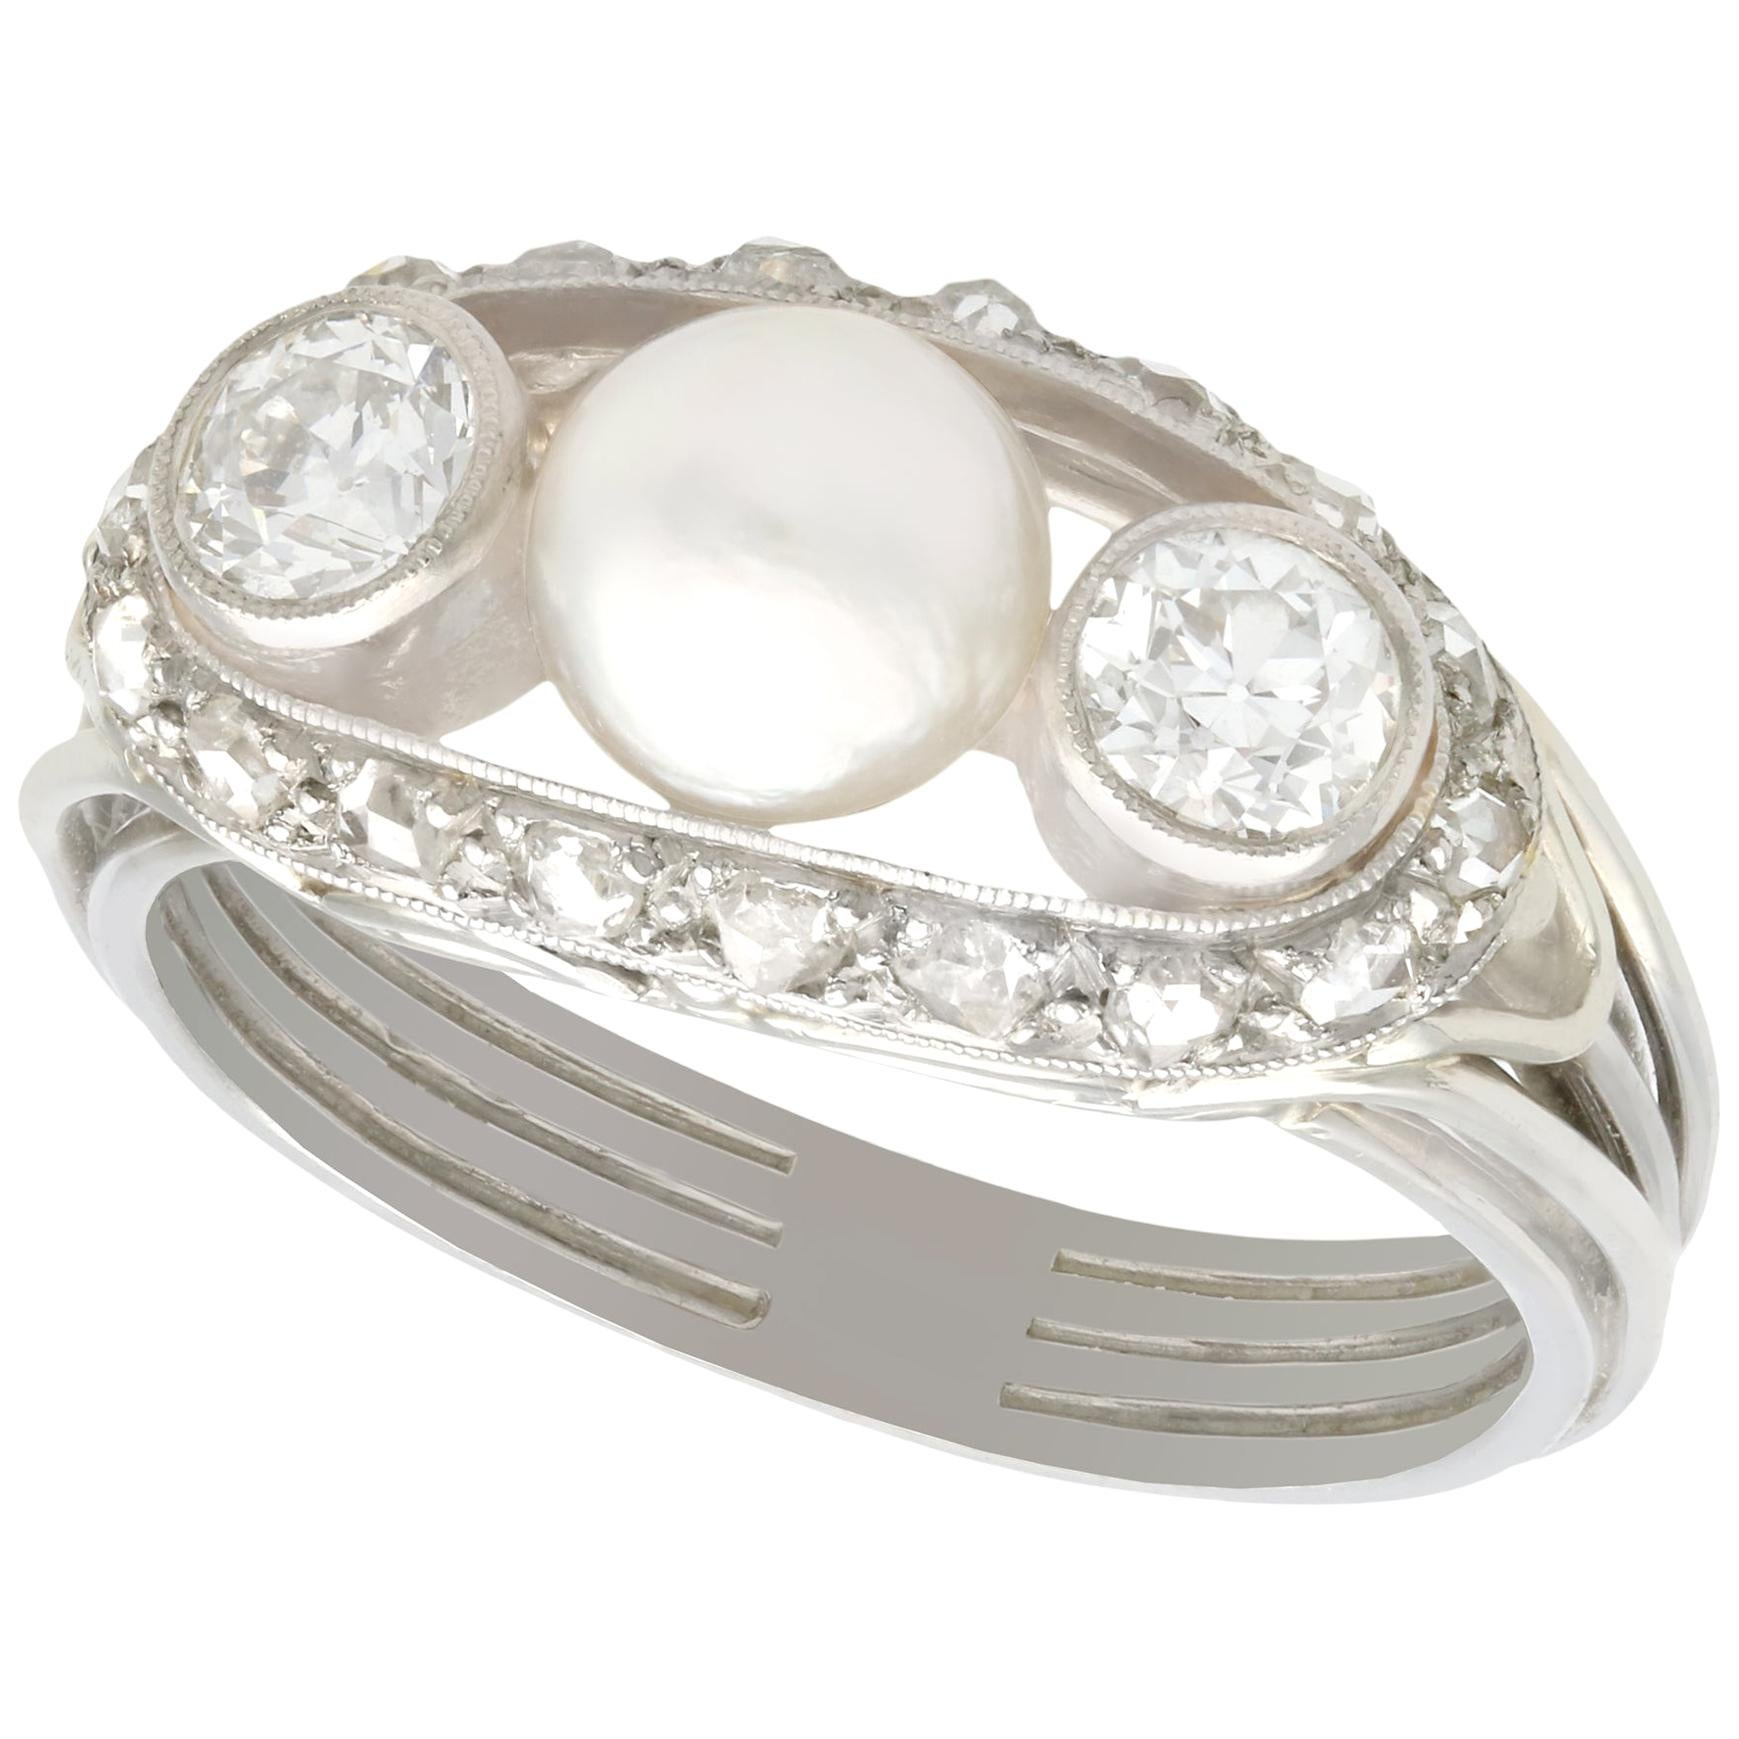 Antique Pearl and Diamond White Gold Cocktail Ring Circa 1920